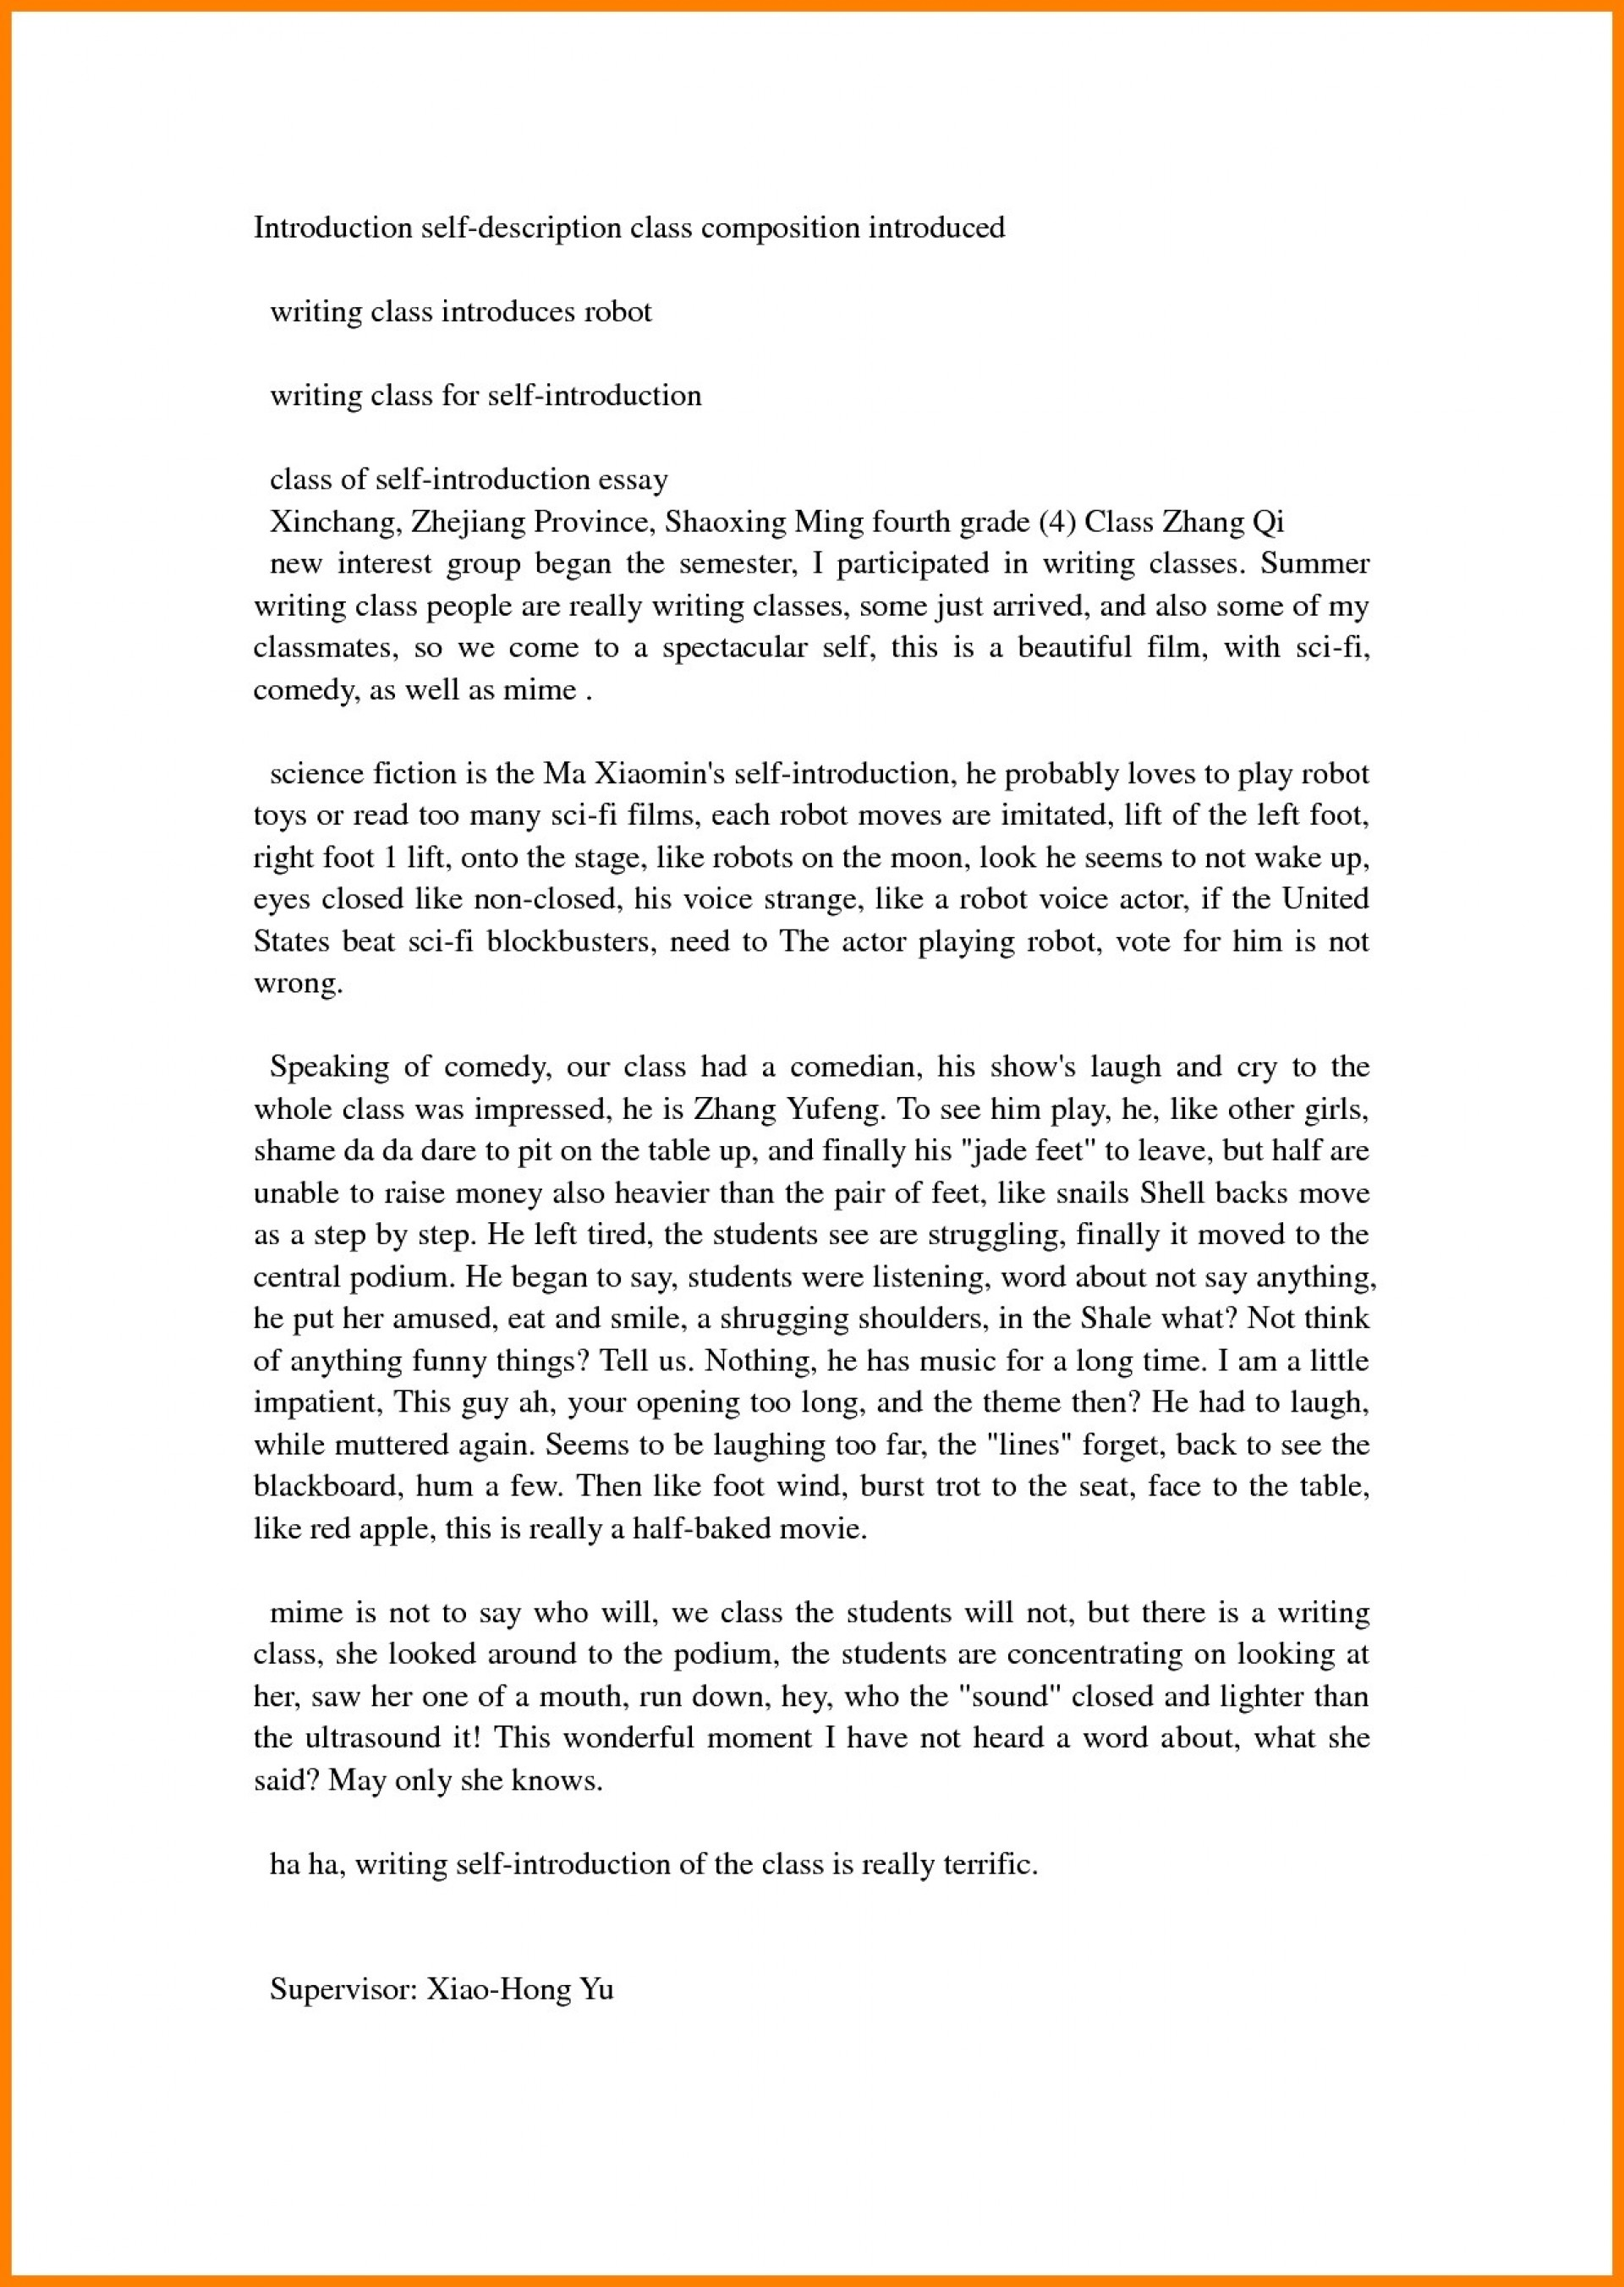 015 How To Write Ann Letter About Yourself Essay Myself Of Example Striking Introduction Introduce Apply Job With Body And Conclusion 1920